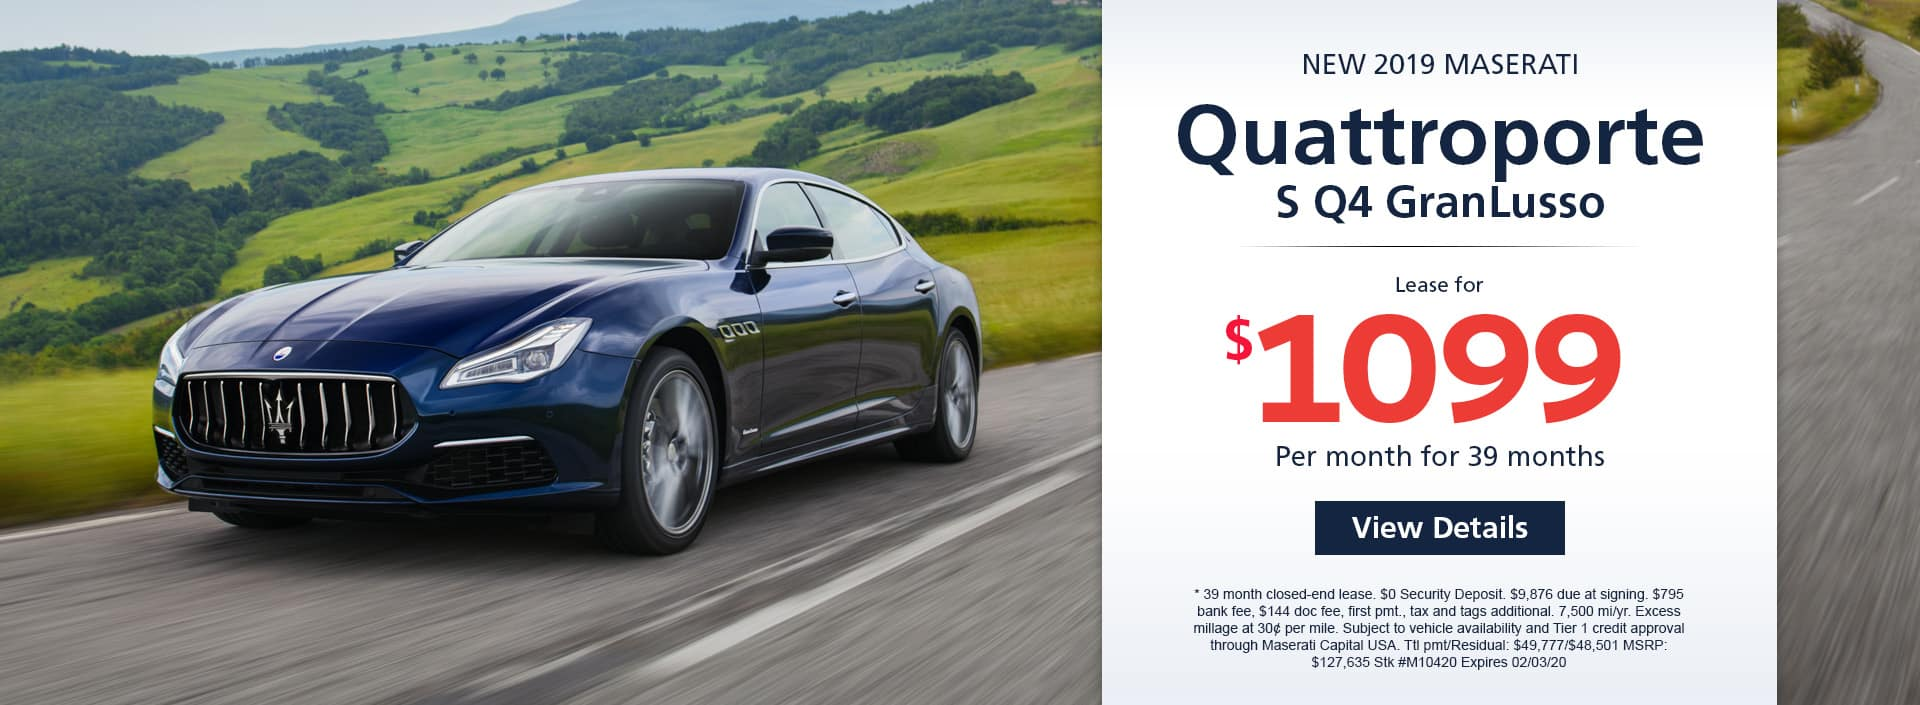 Lease a new 2019 Maserati Quattroporte S Q4 GranLusso for $1,099 a month for 39 months. Or get special 0% APR financing for up to 60 months or 0% APR financing up to 72 months